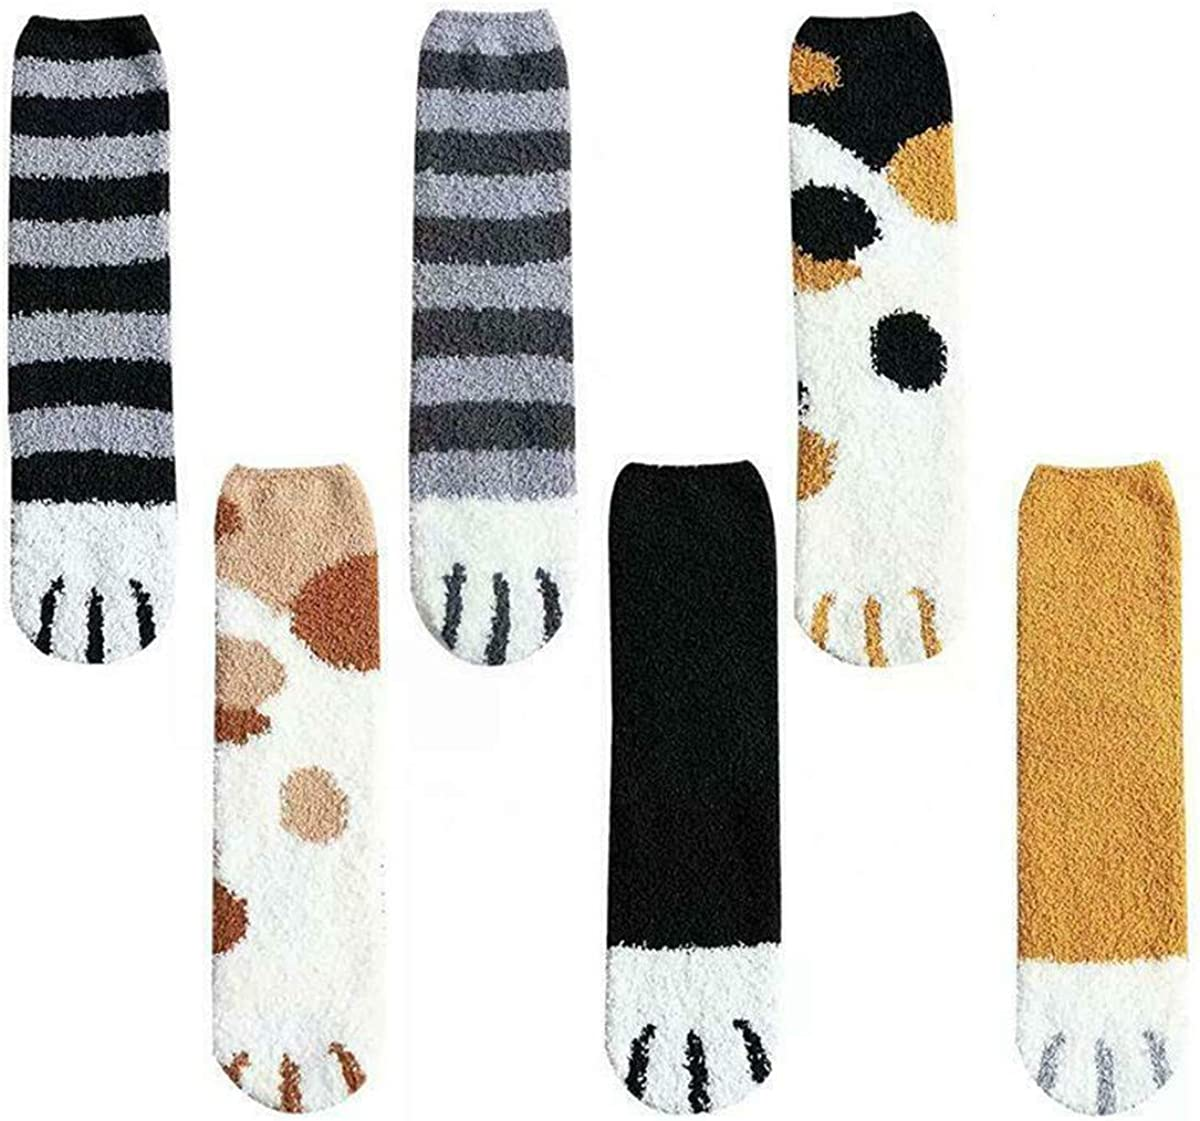 6 Pairs Cute Cat Claw Design Plush Cozy Slipper Sock for Womens Winter Indoor Warm Fuzzy Sleeping Socks, Thick Cotton Socks